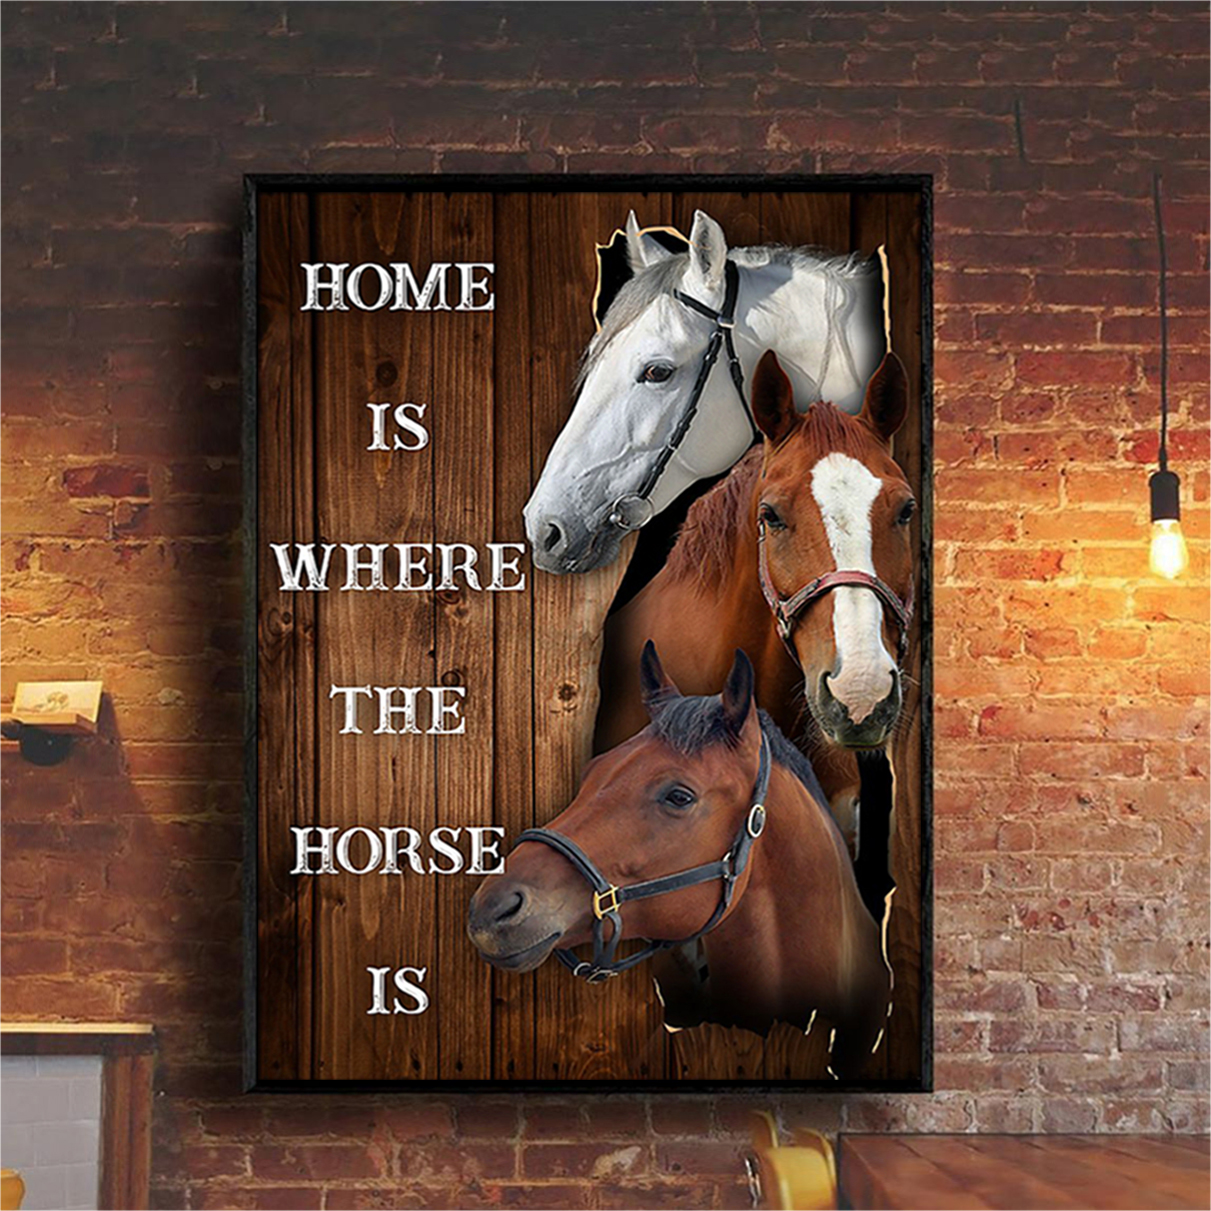 Home is where the horse is poster A3